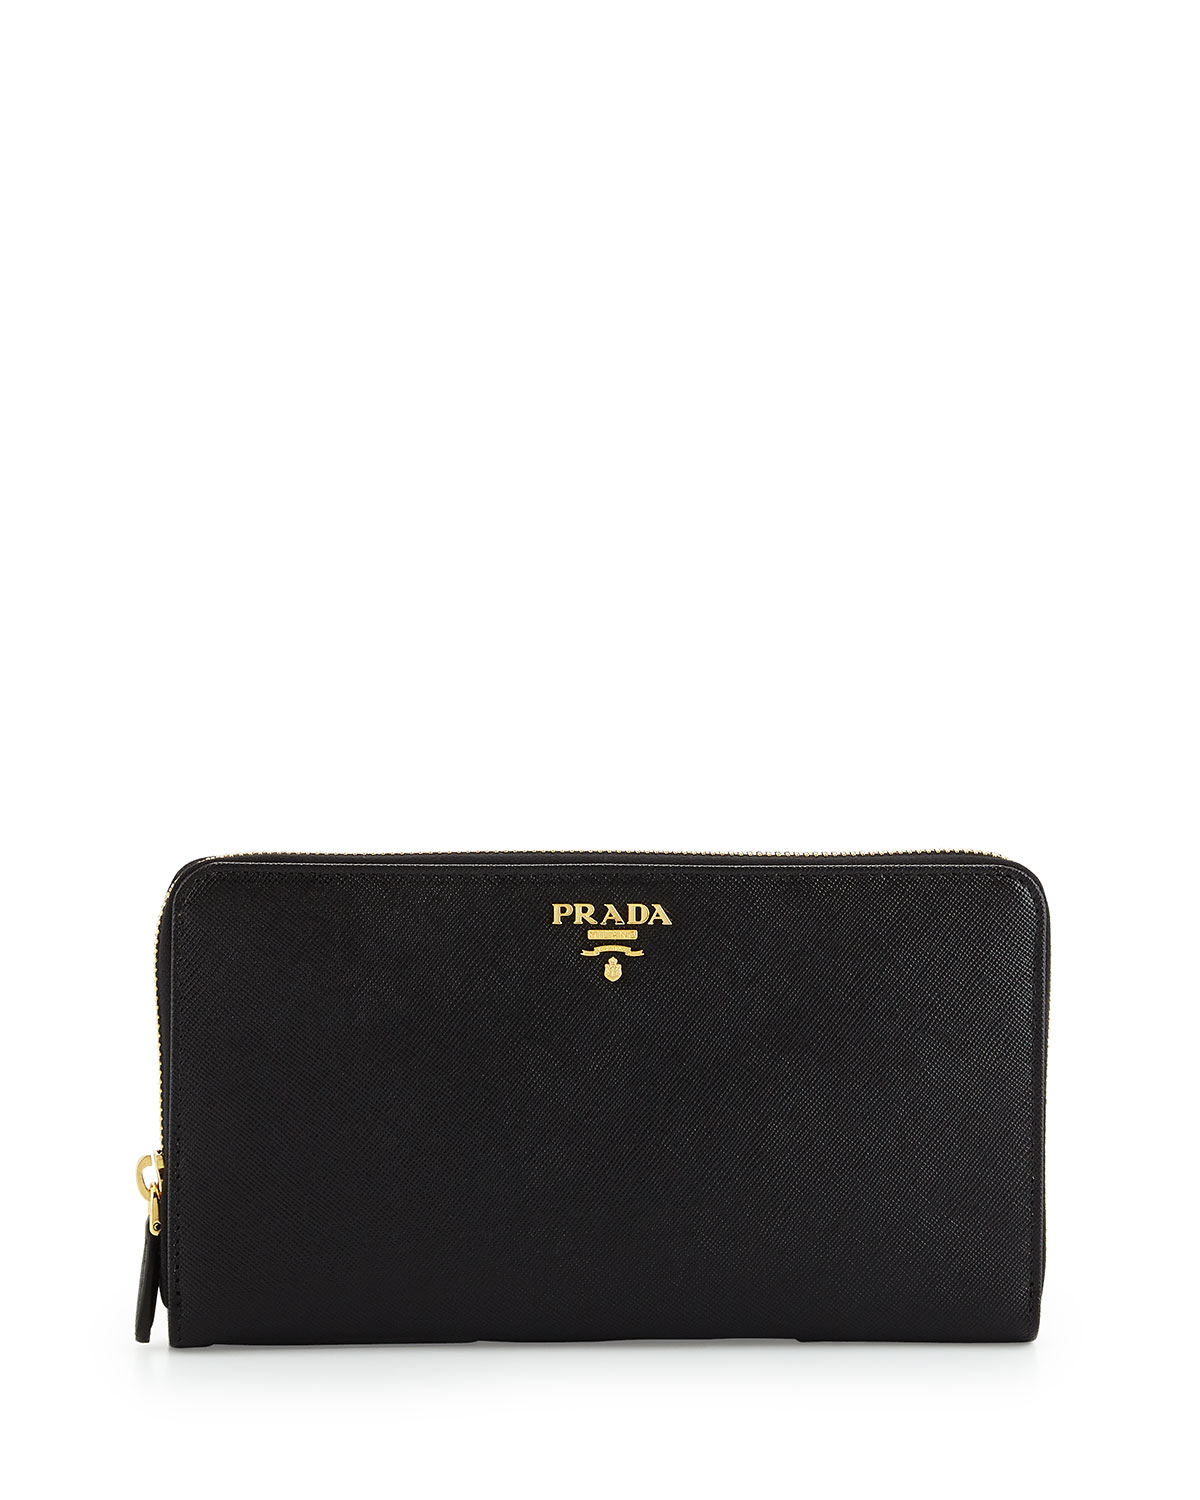 92af4931b6833 Prada Textured Leather Travel Wallet